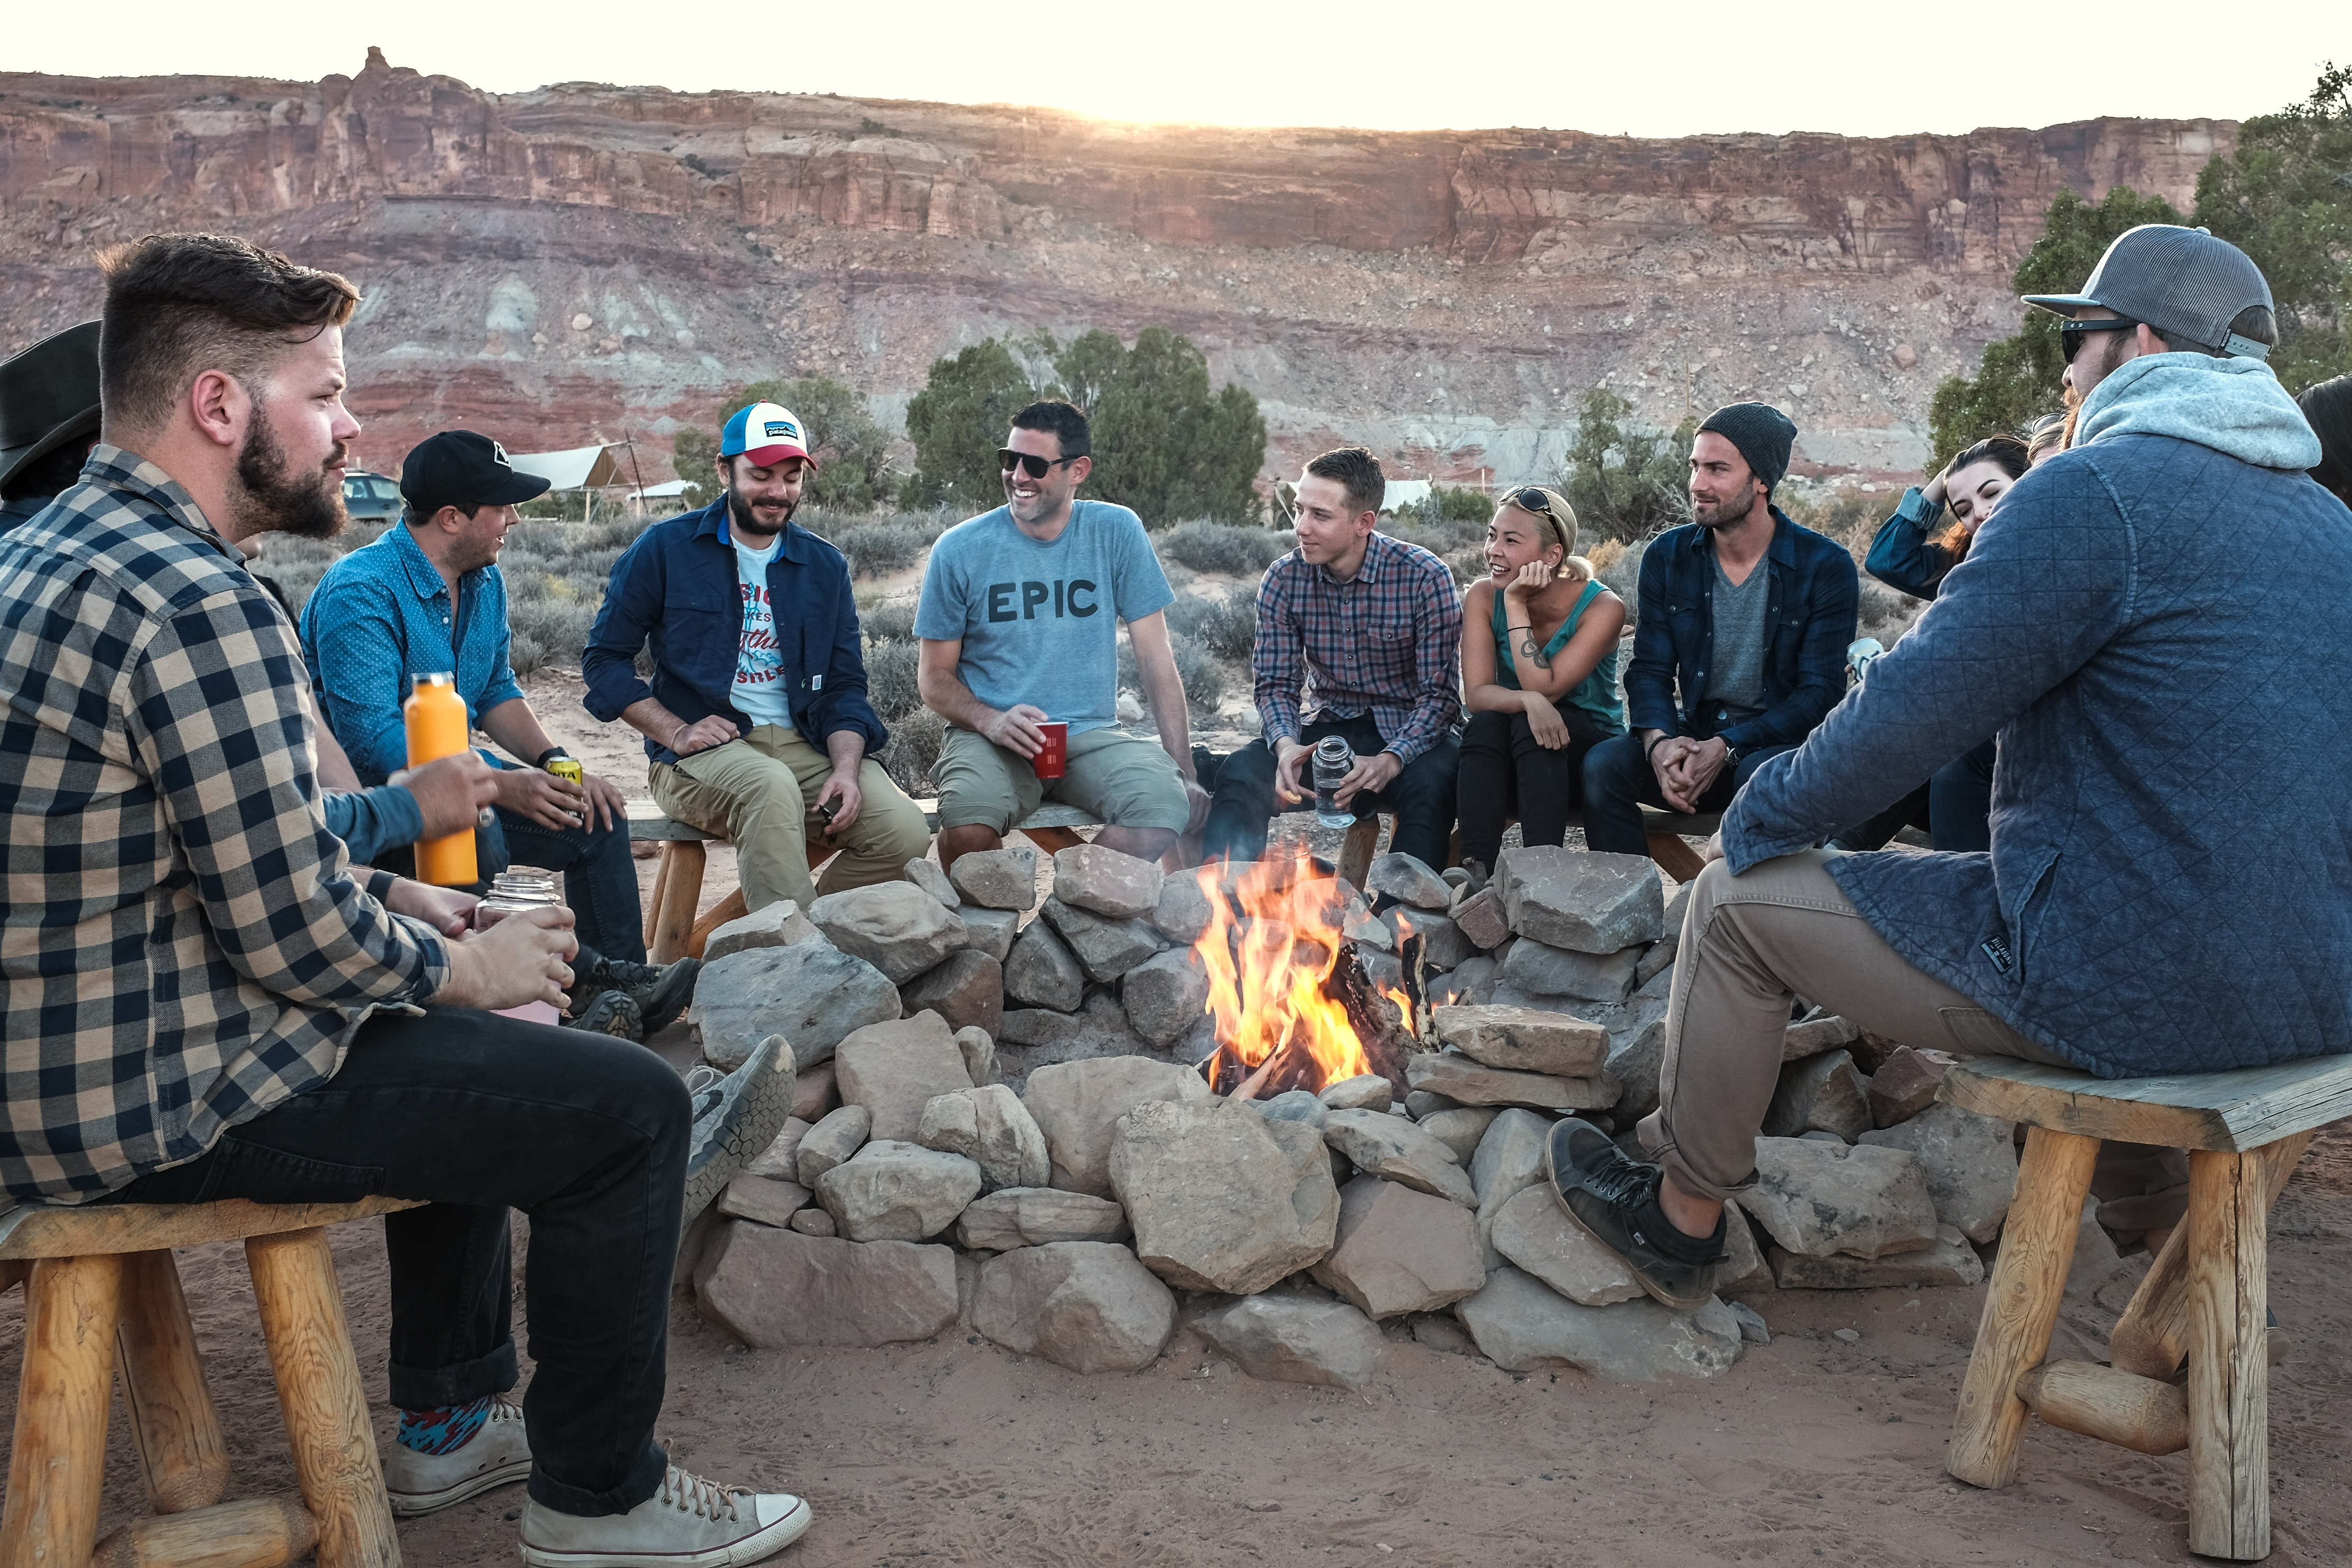 4 ways to attract millennials to your campground